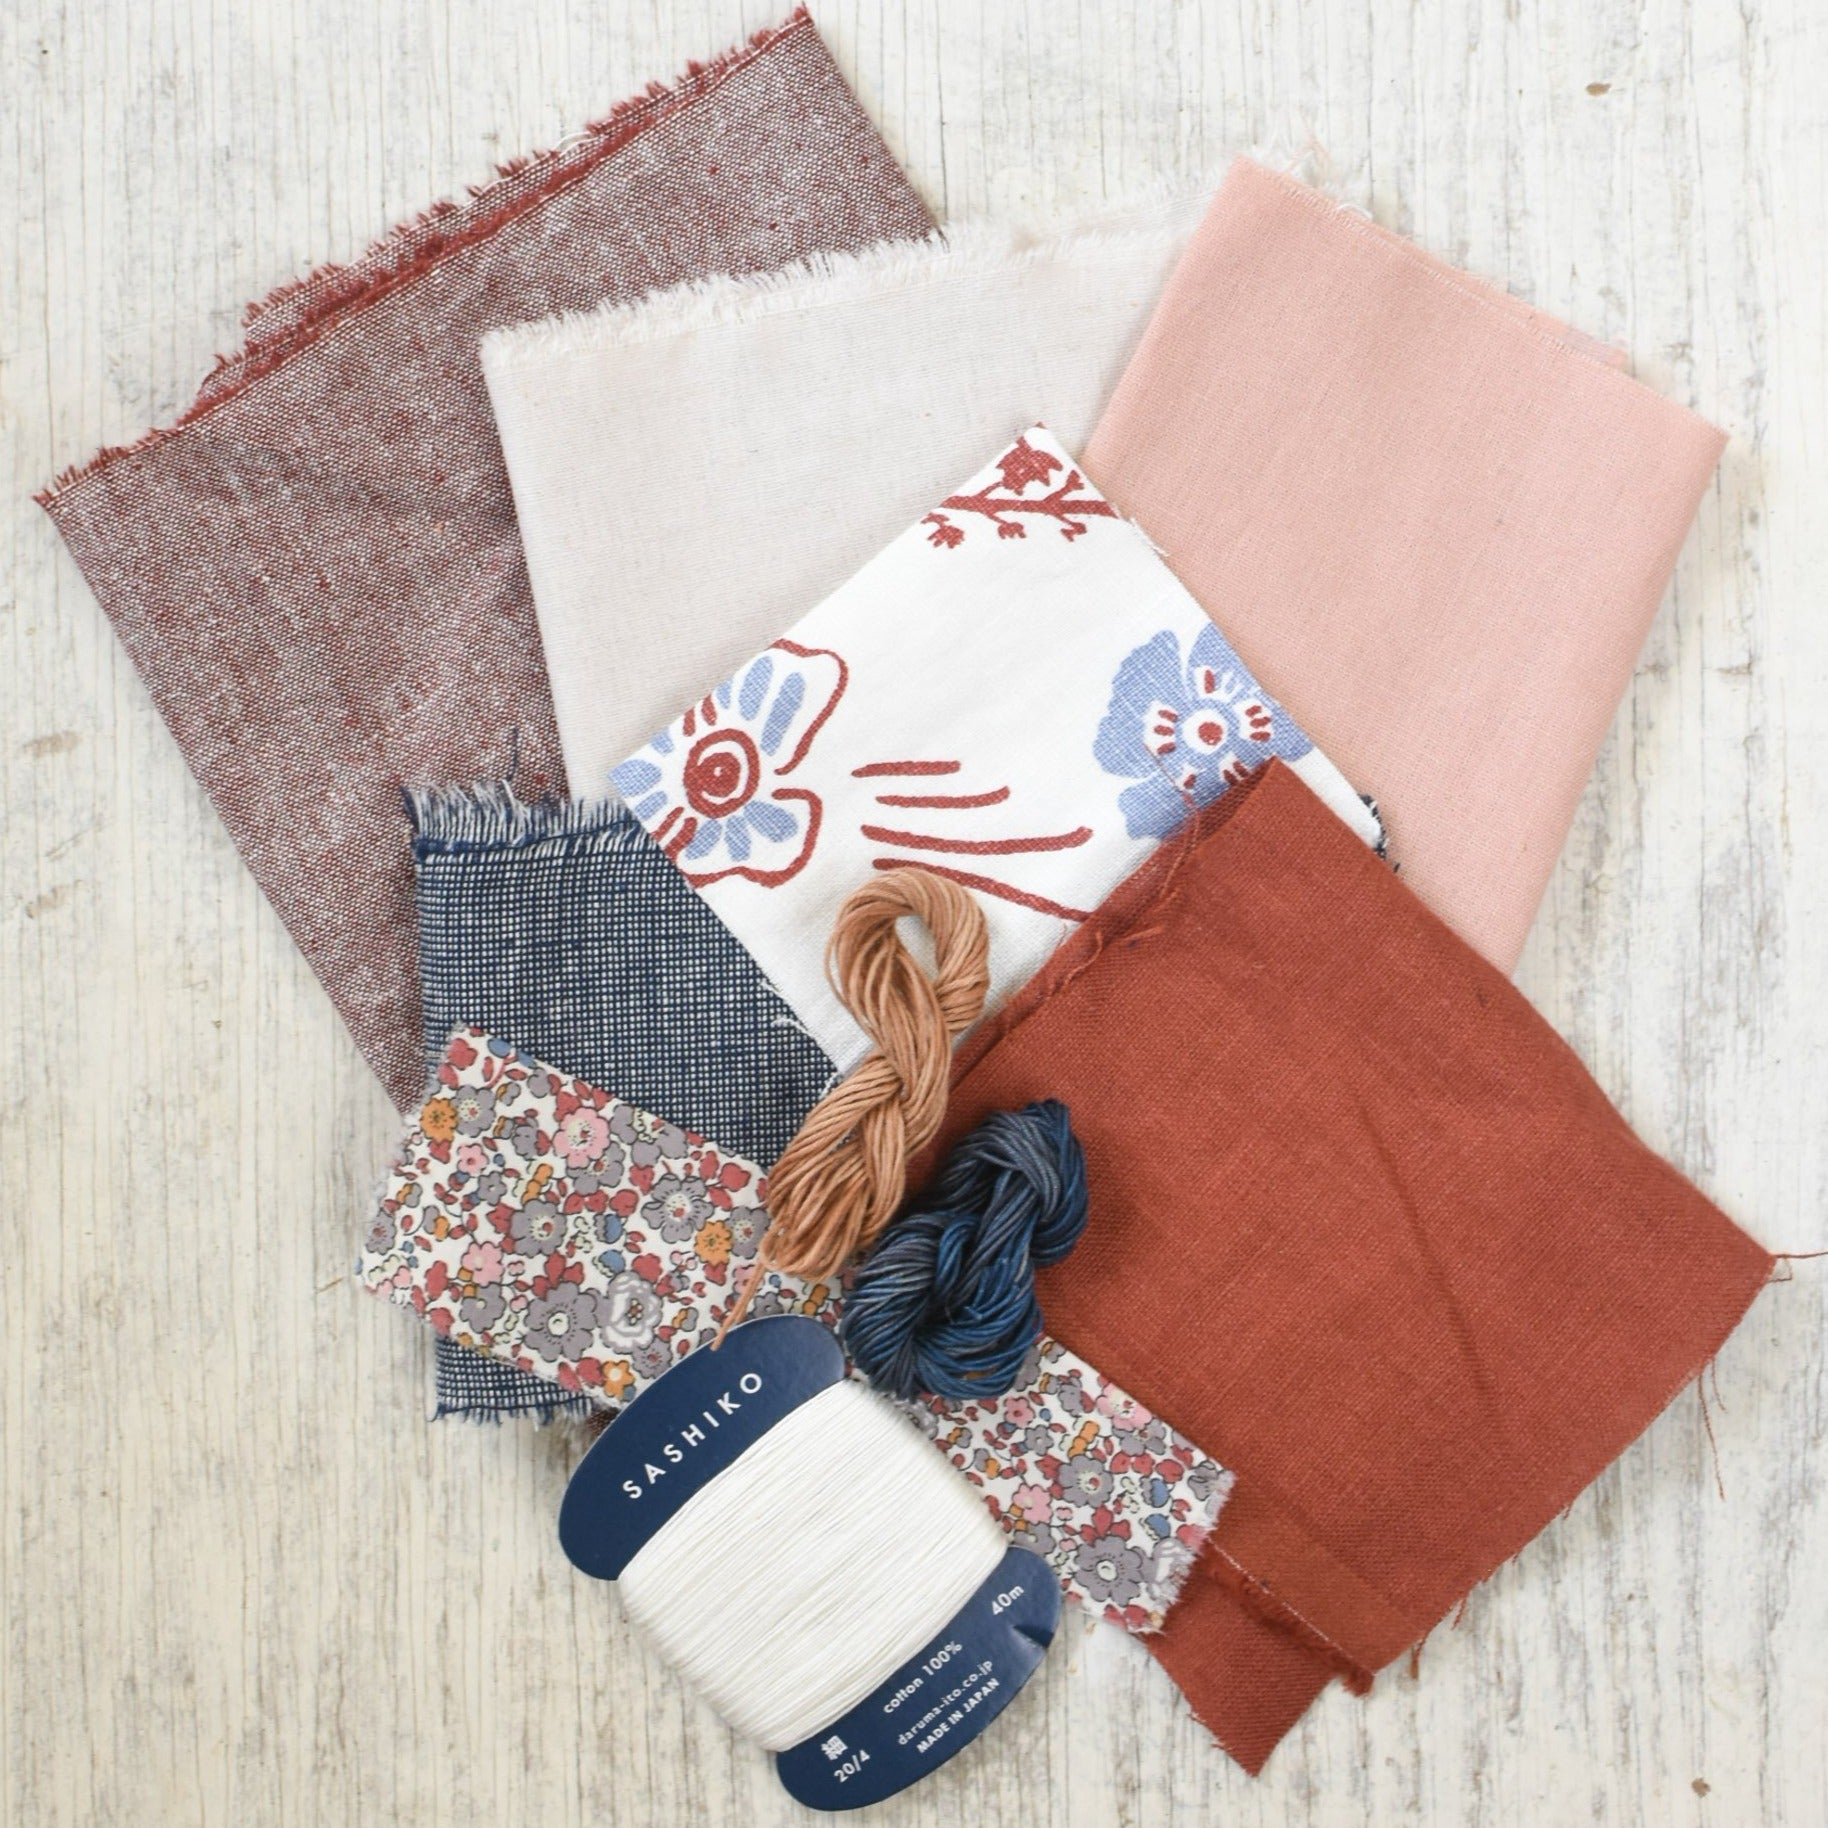 Fabric + Thread Bundles